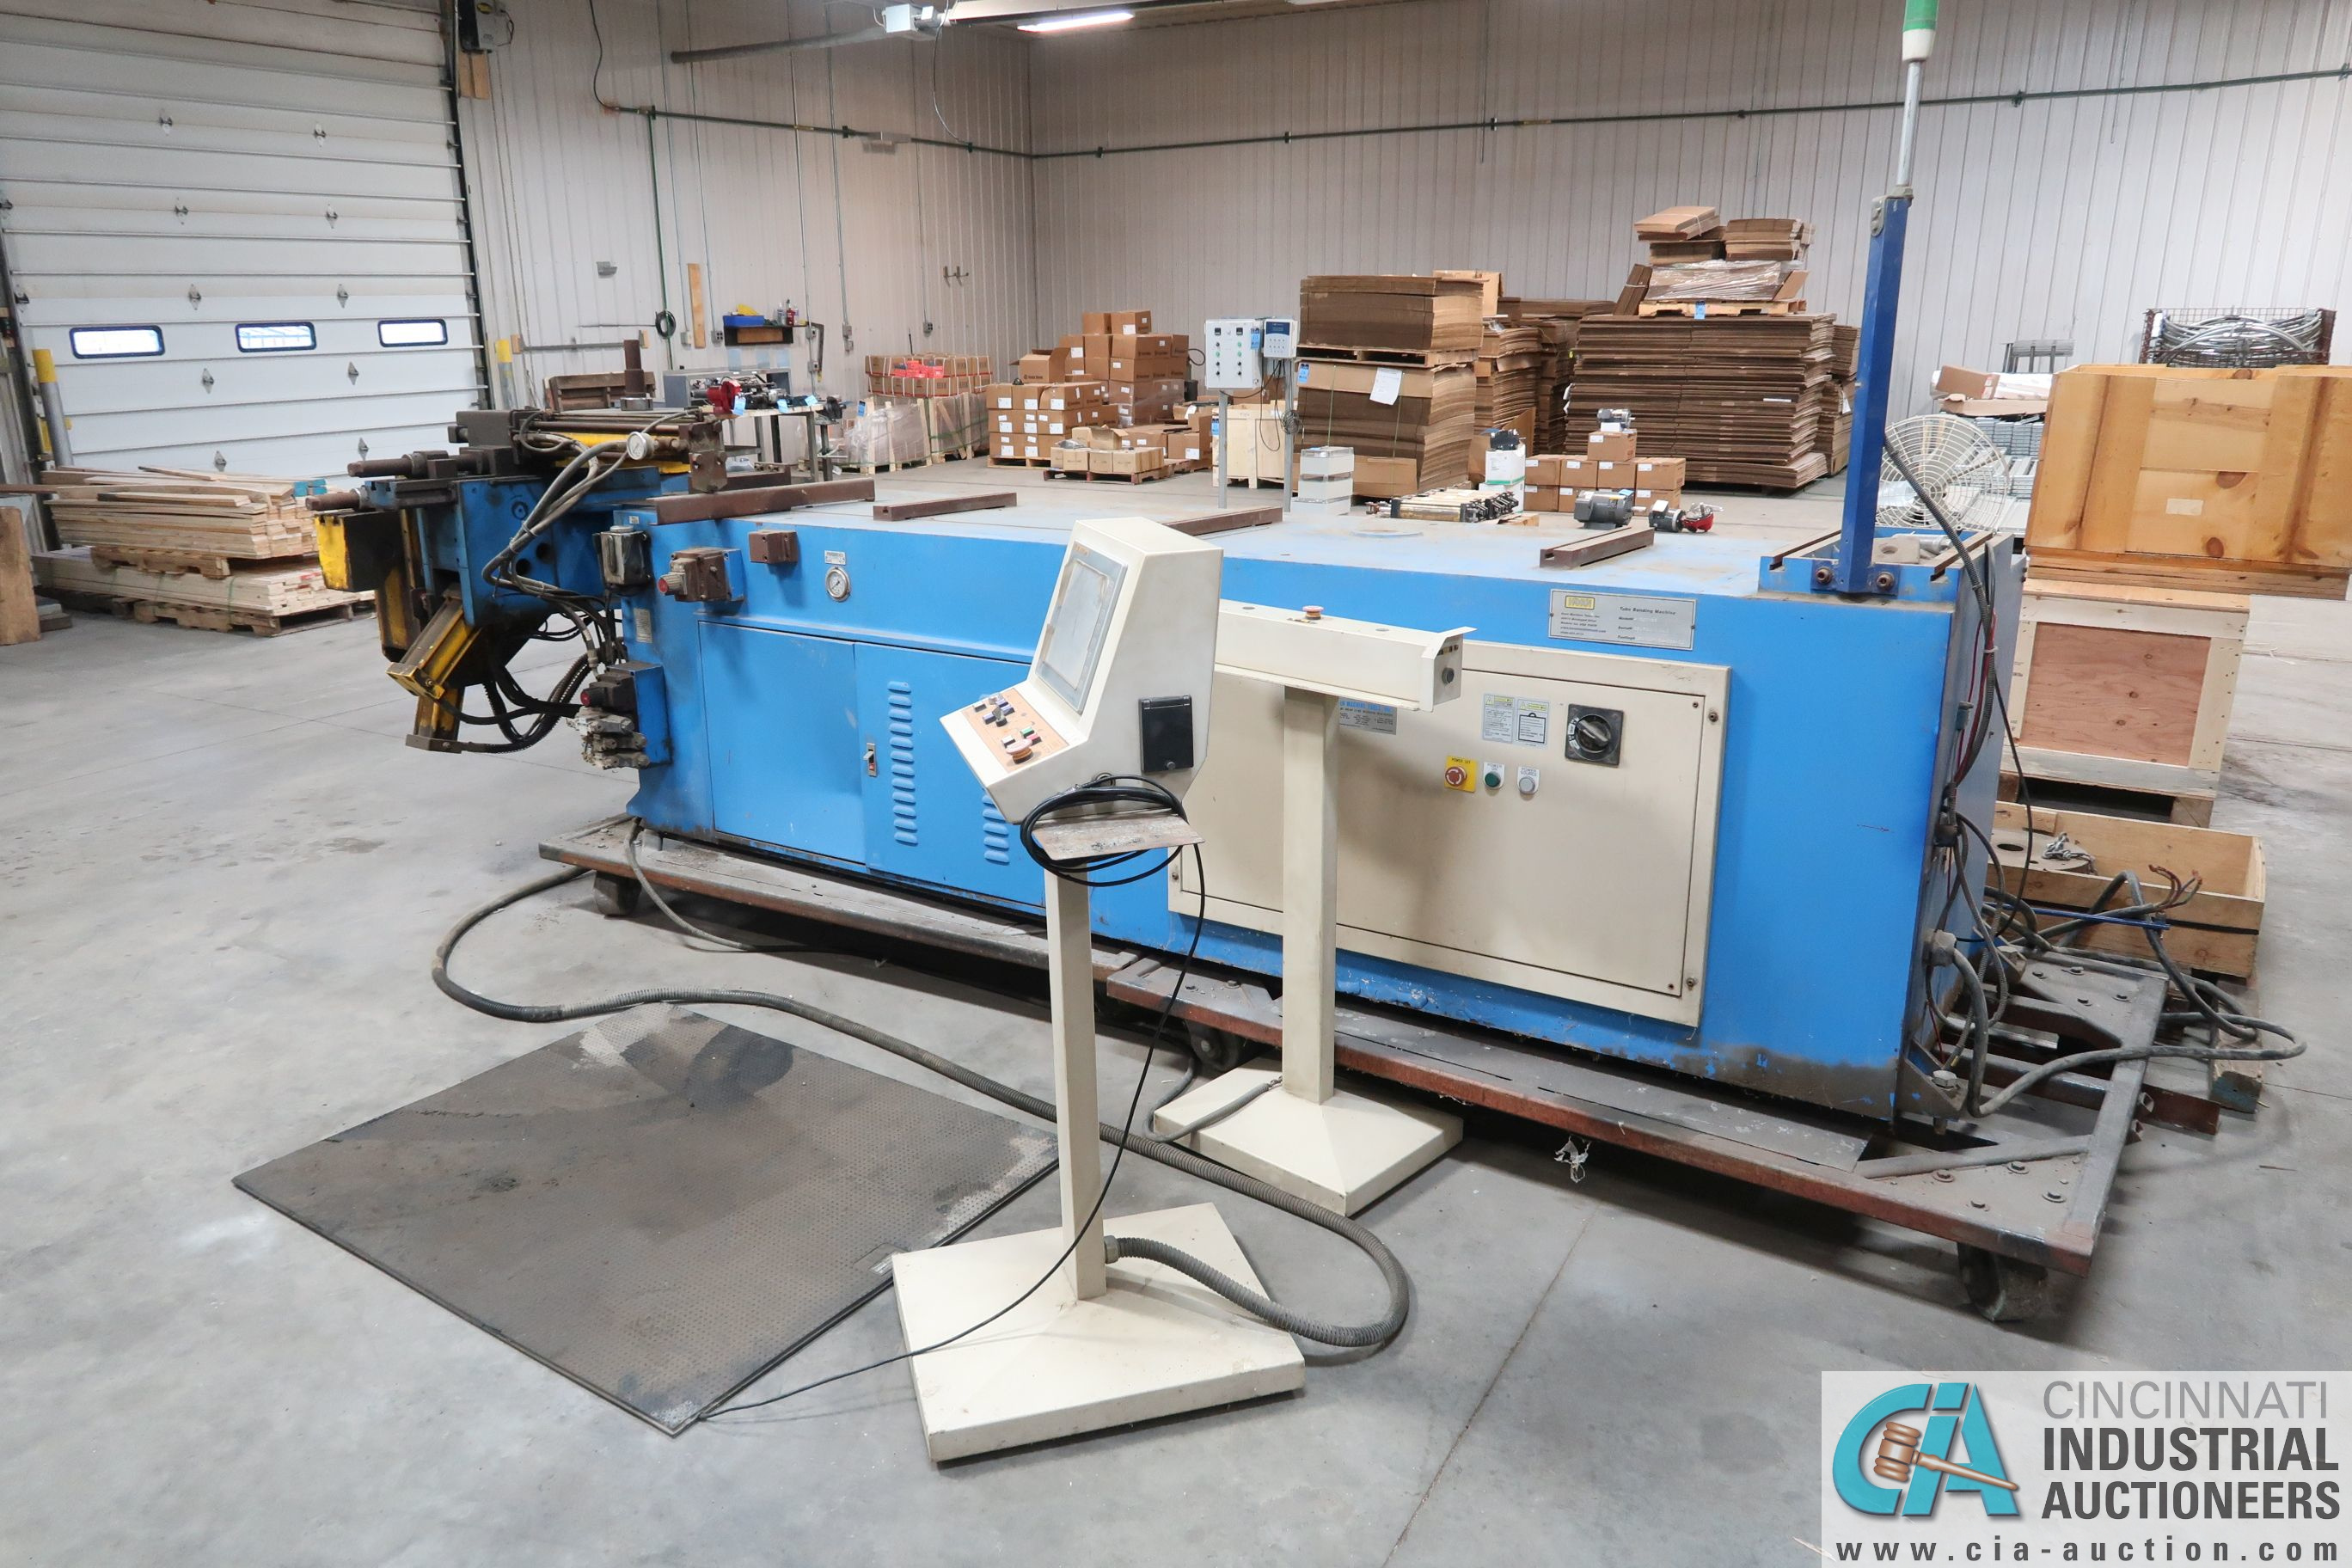 """4"""" HORN MODEL A100 TNCB CNC HYDRAULIC TUBE BENDER; S/N 080334-434B, CAPACITIES: 4"""" X .217 MILL STEEL - Image 3 of 11"""